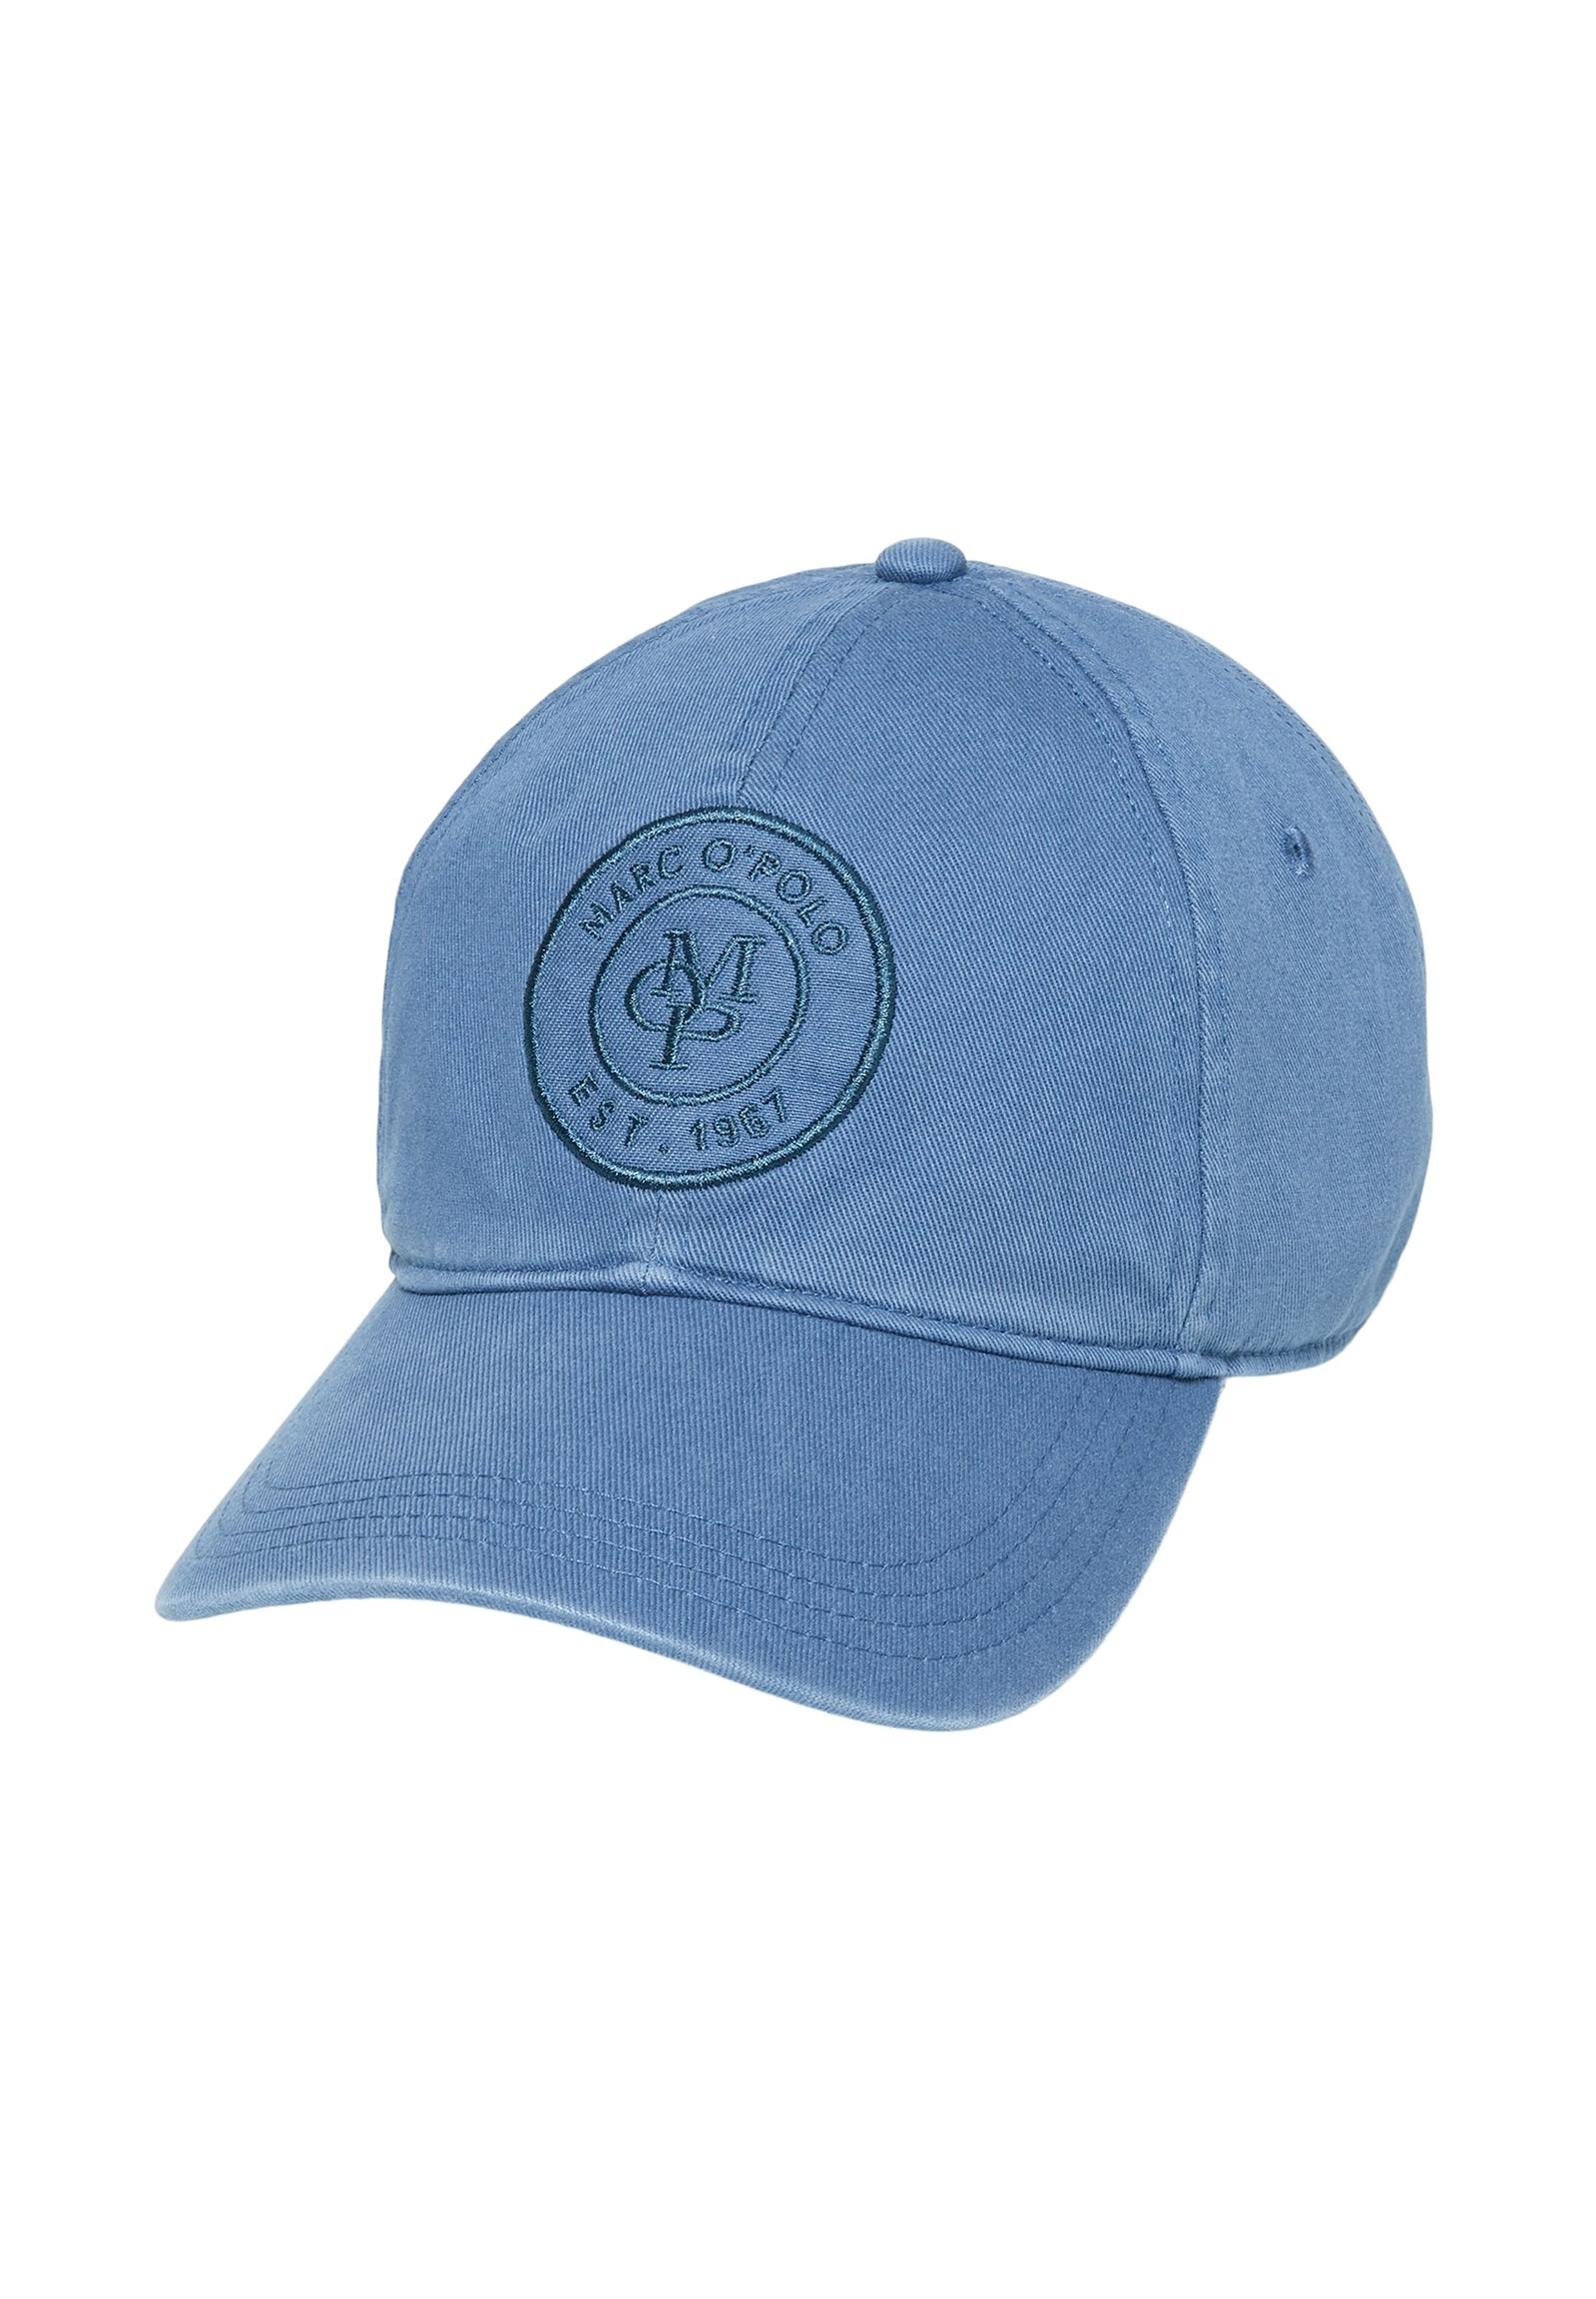 Marc O'polo Cap - Dark Blue/blau